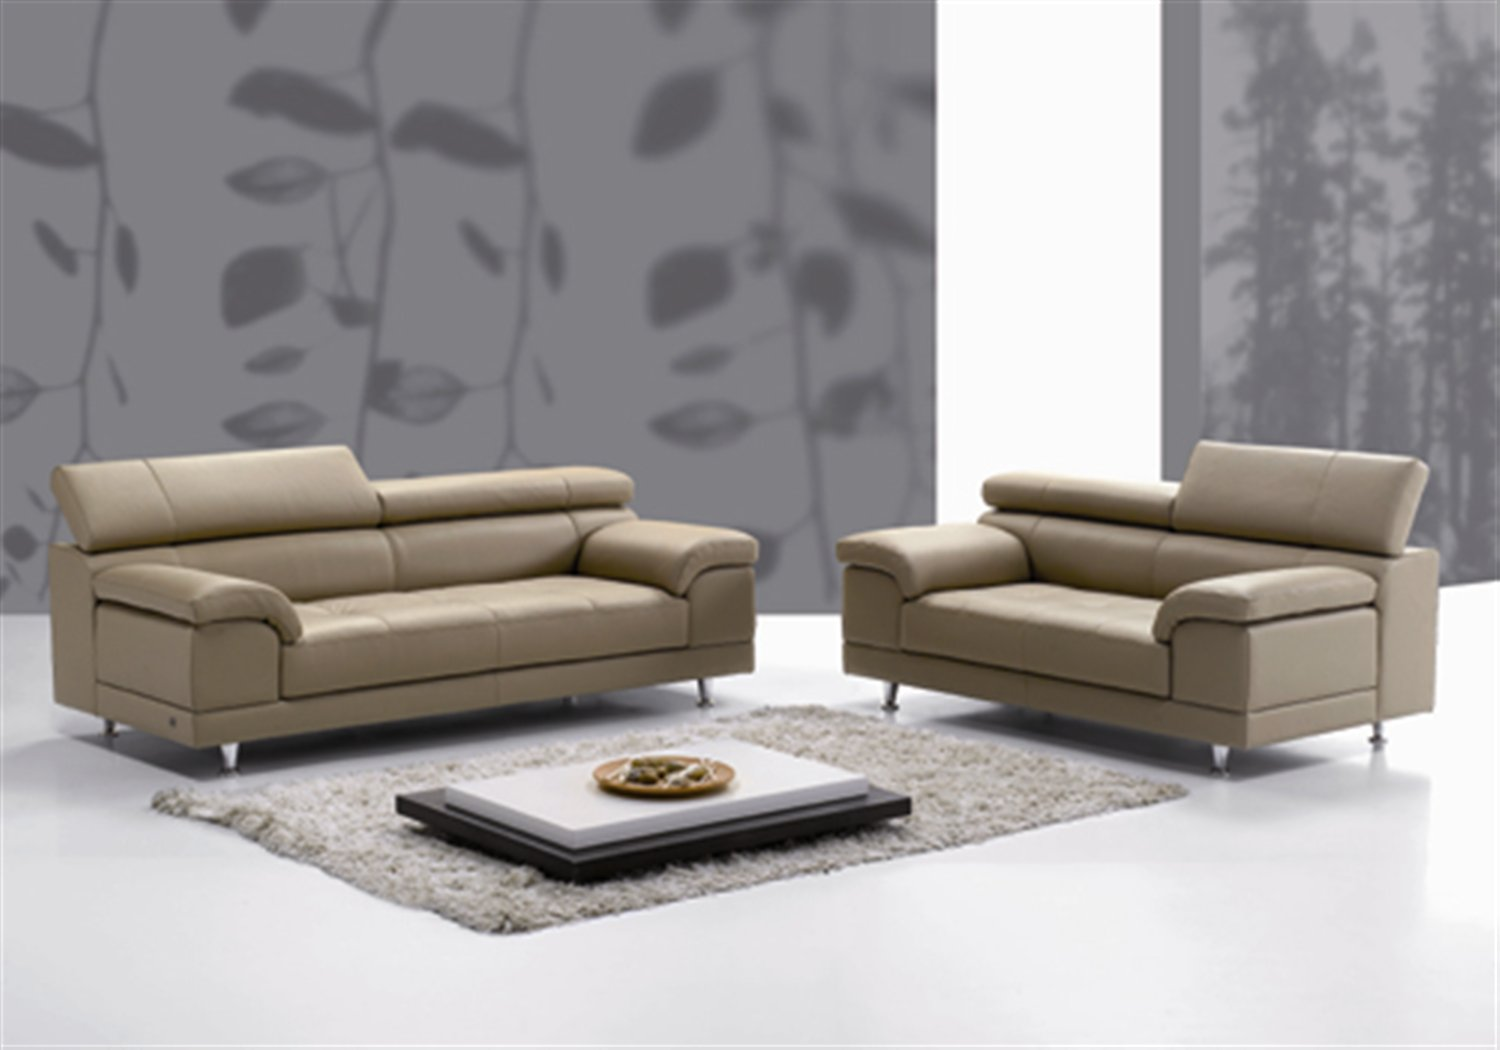 These vintage brands will only increase in value. Italian Leather Sofa, Affordable and Quality from Piquattro